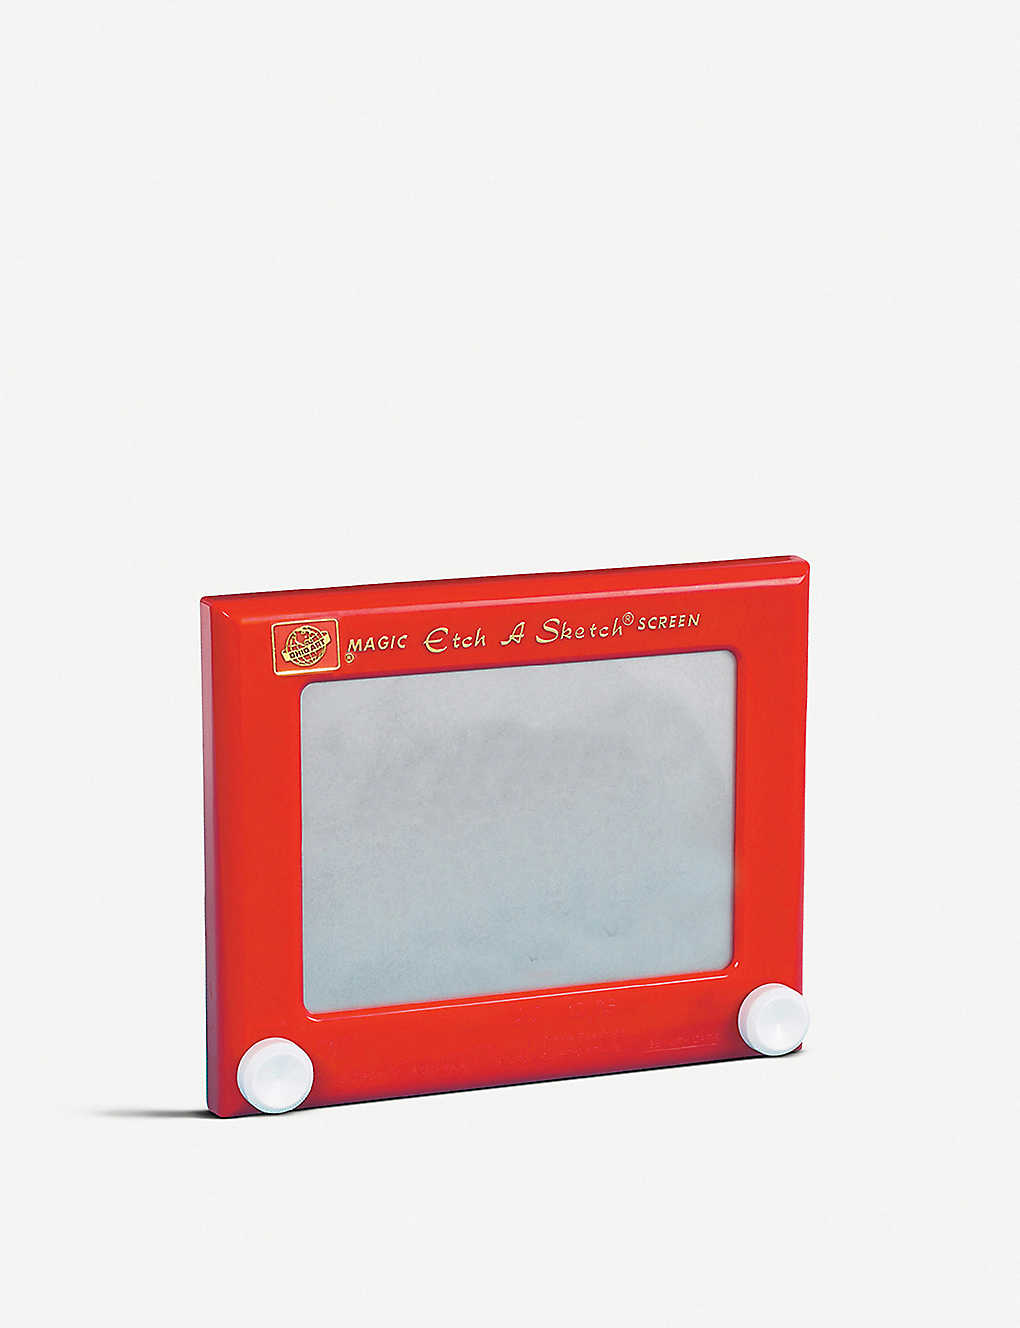 POCKET MONEY - Magic Screen etch a sketch | Selfridges com